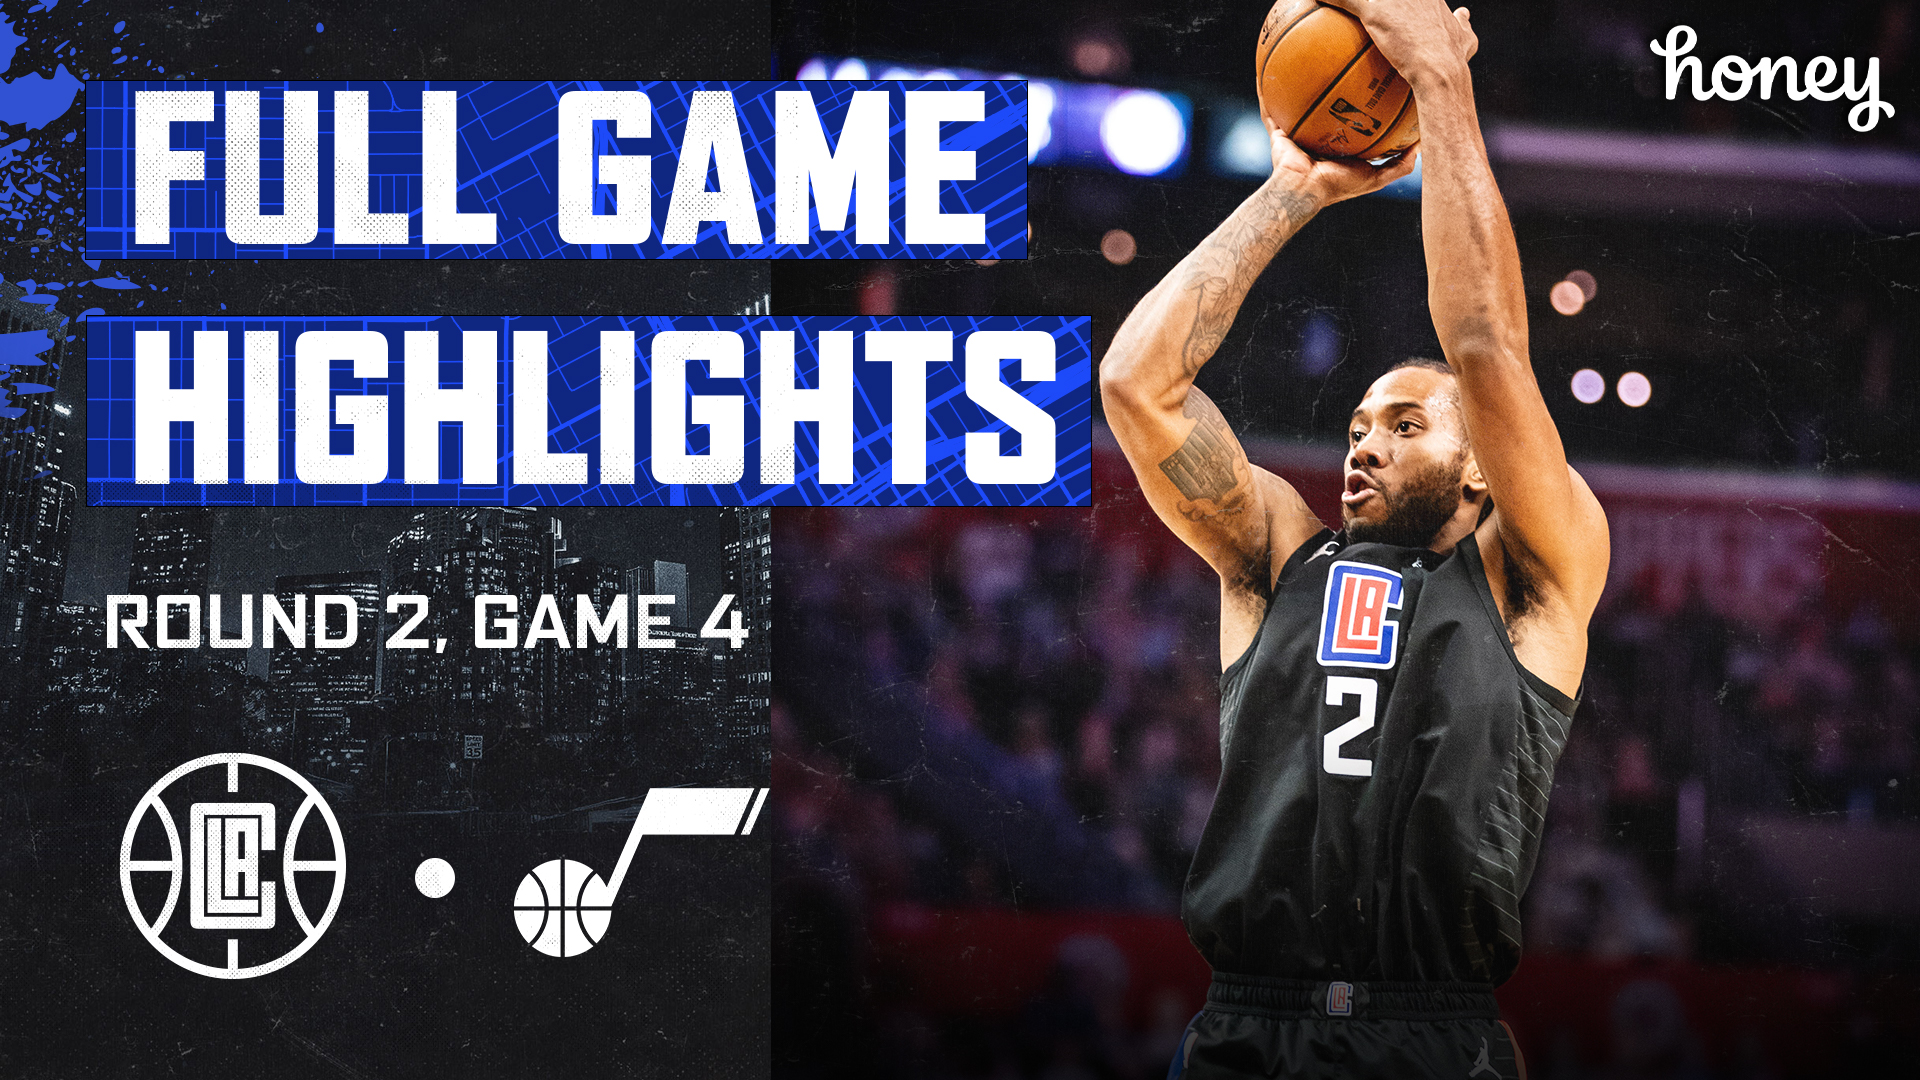 Honey Highlights | Clippers Win vs Jazz Game 4 | (6.14.21)